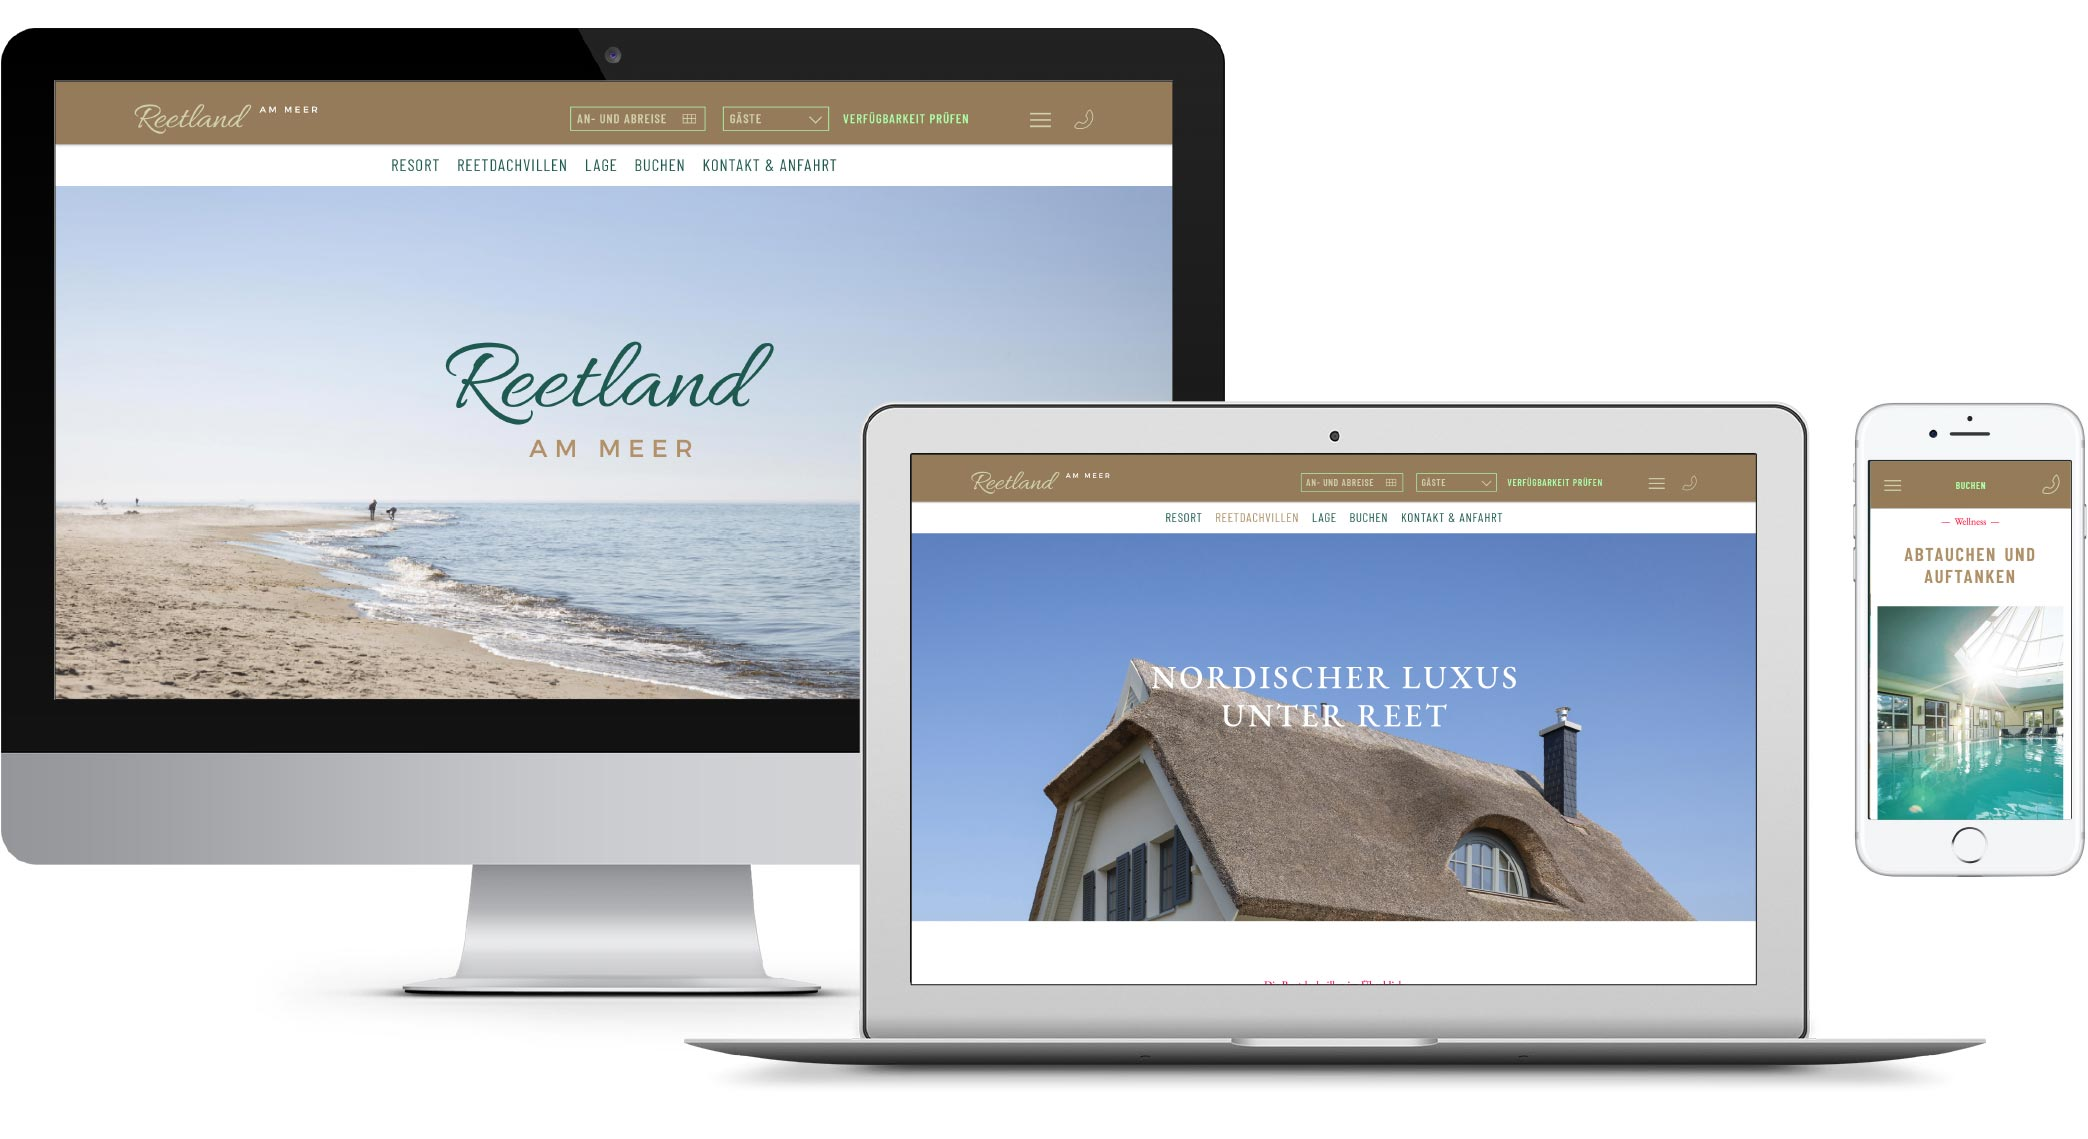 reetland-spread-website-1